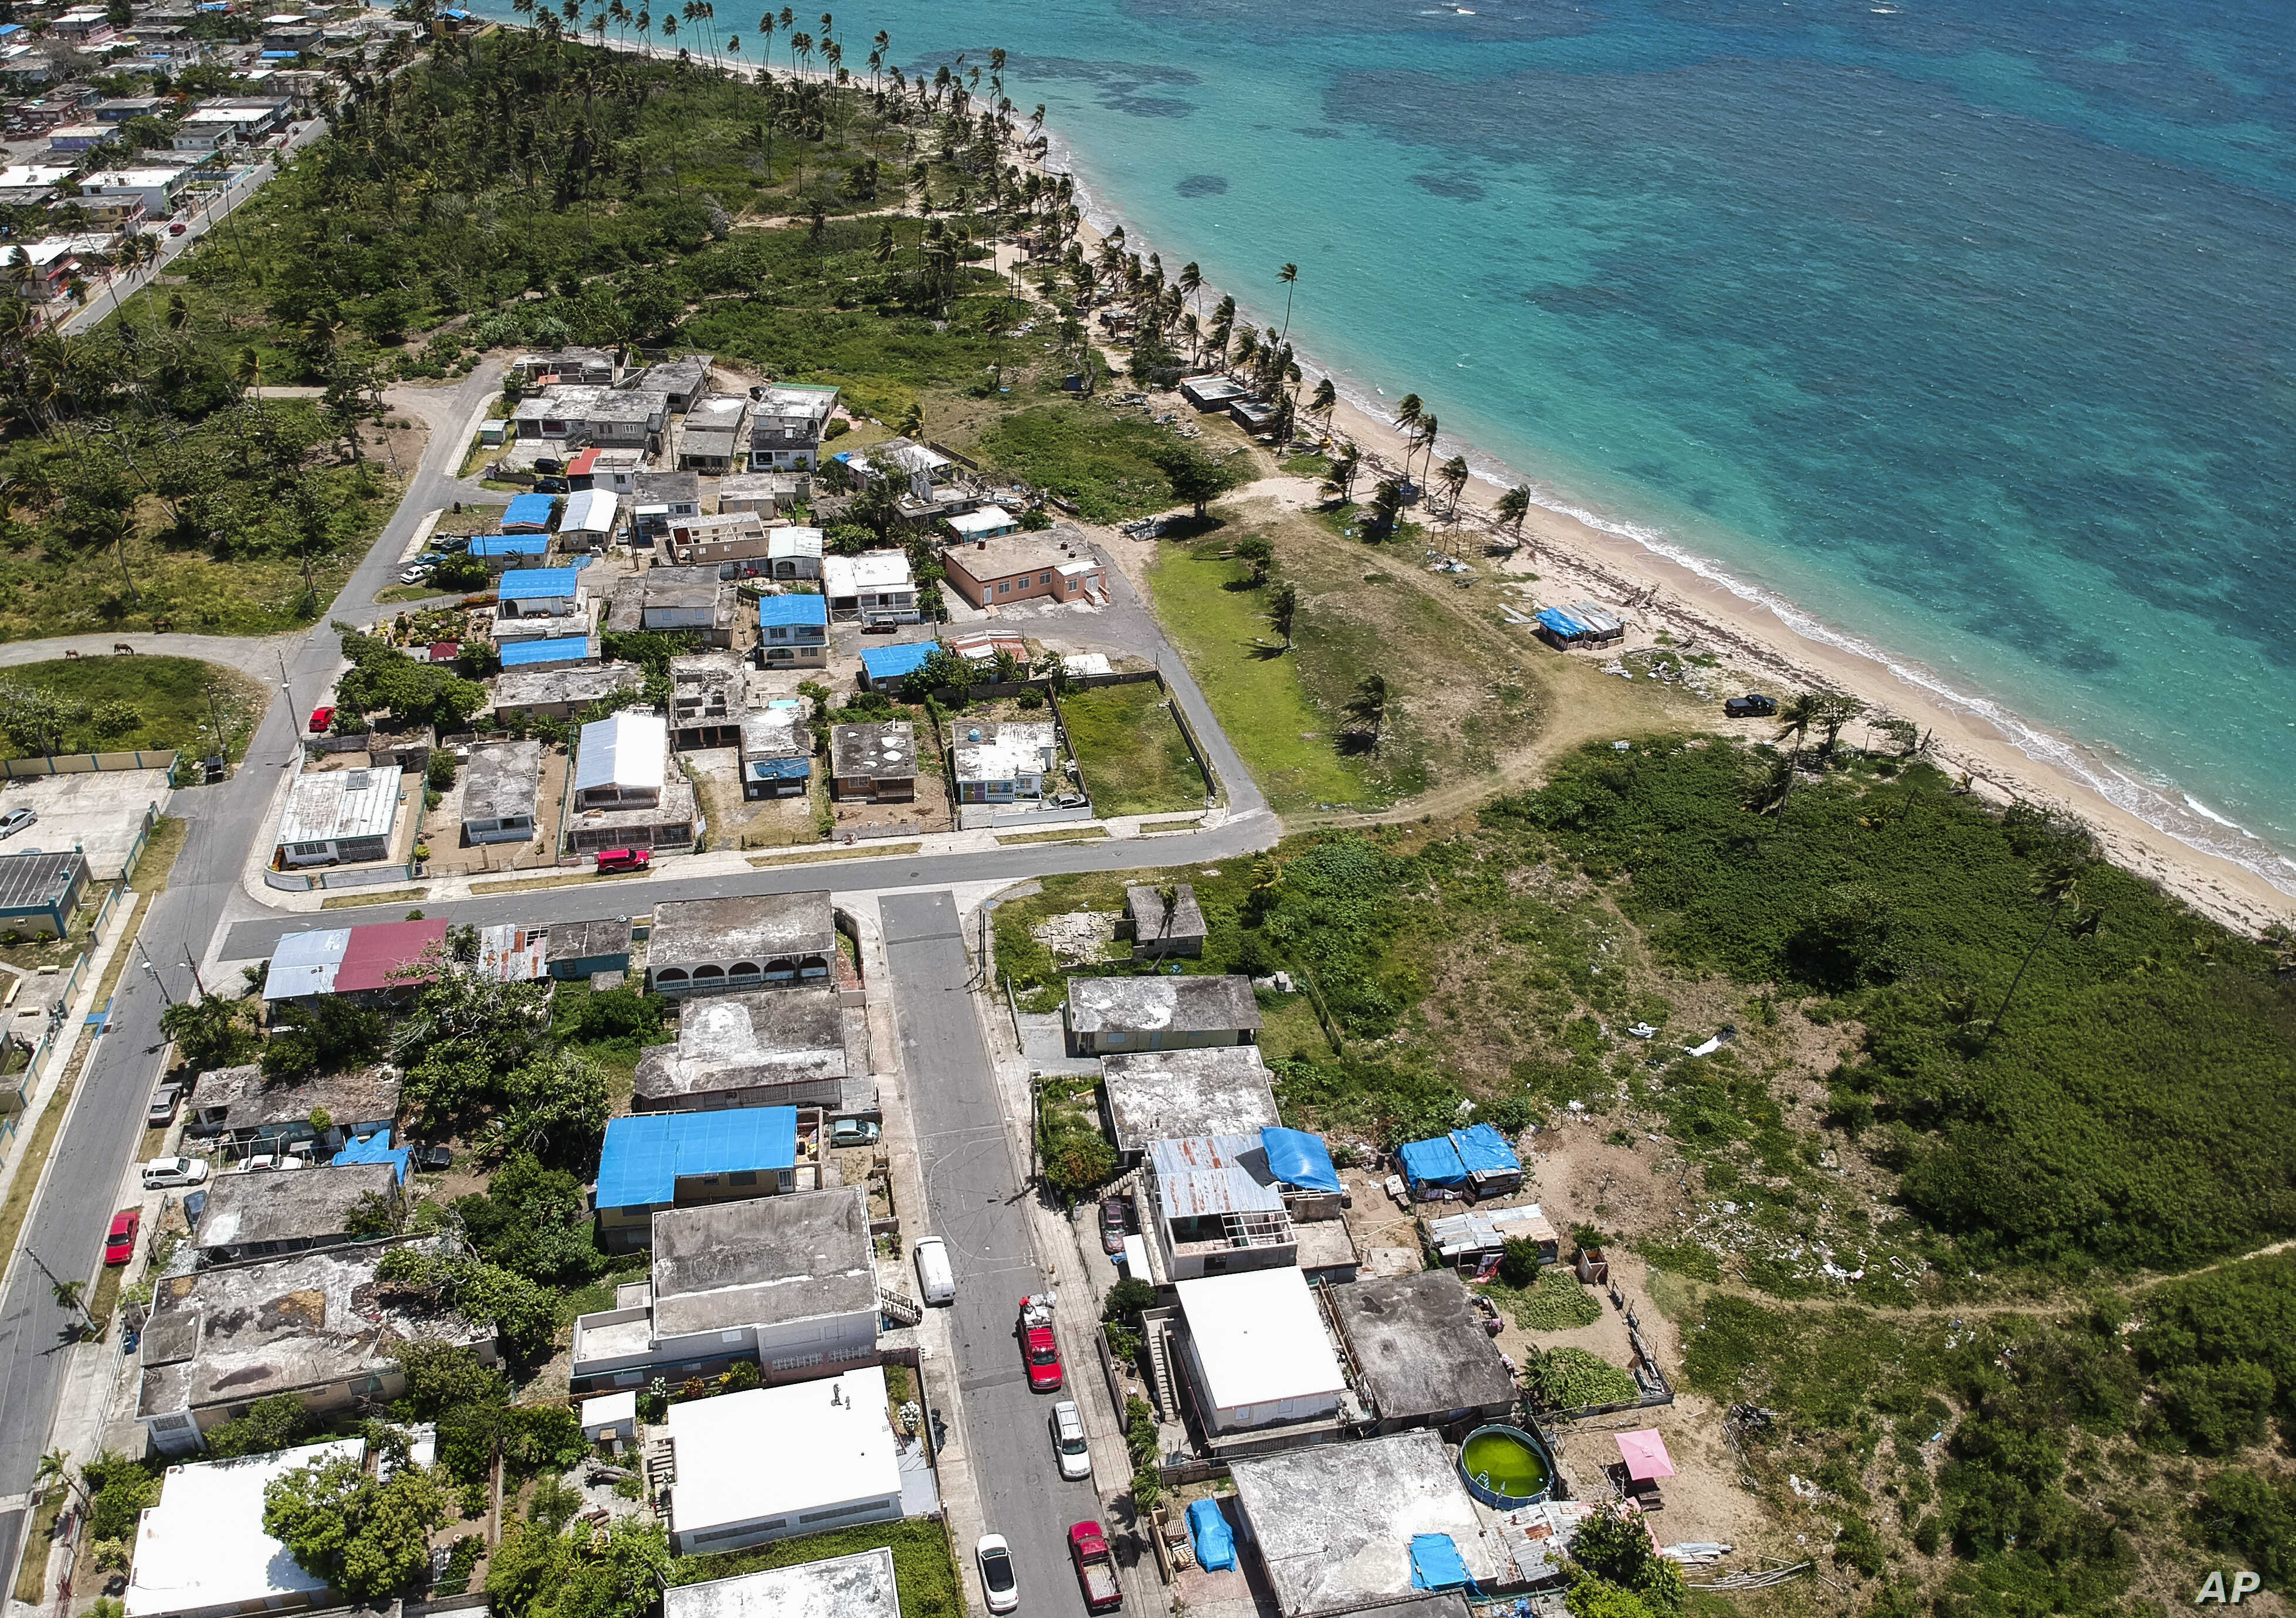 FILE - This June 18, 2018 file photo shows an aerial photo of the Viequez neighborhood, east of San Juan, Puerto Rico, where people were still living in damaged homes, protected by blue plastic tarps, months since Hurricane Maria devastated the islan